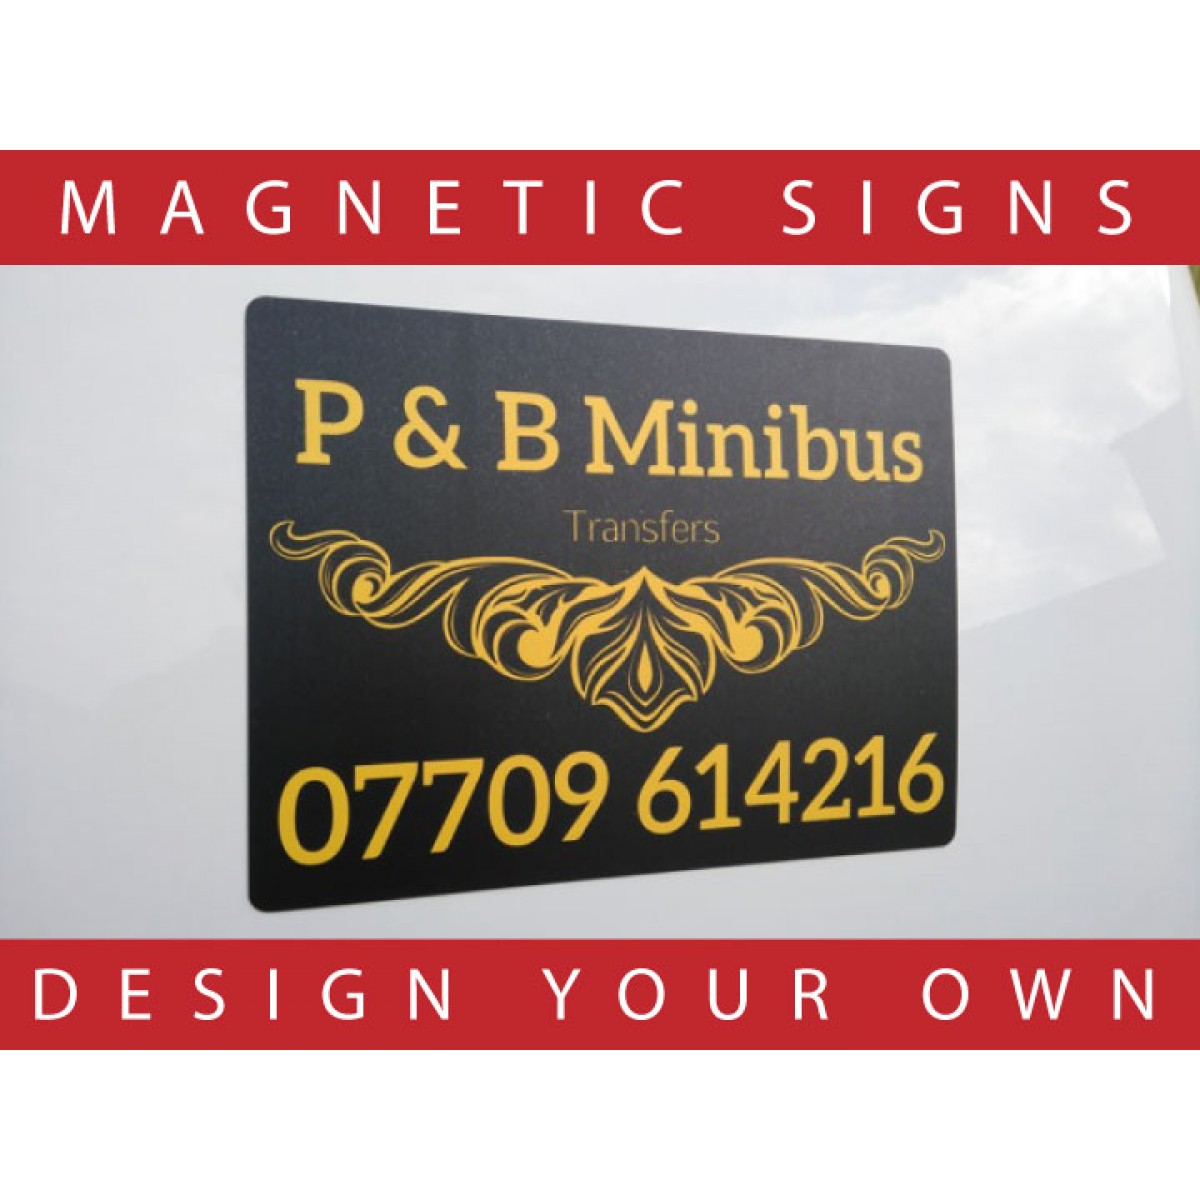 Magnetic signs for cars and vans design your own the for Design your own house sign